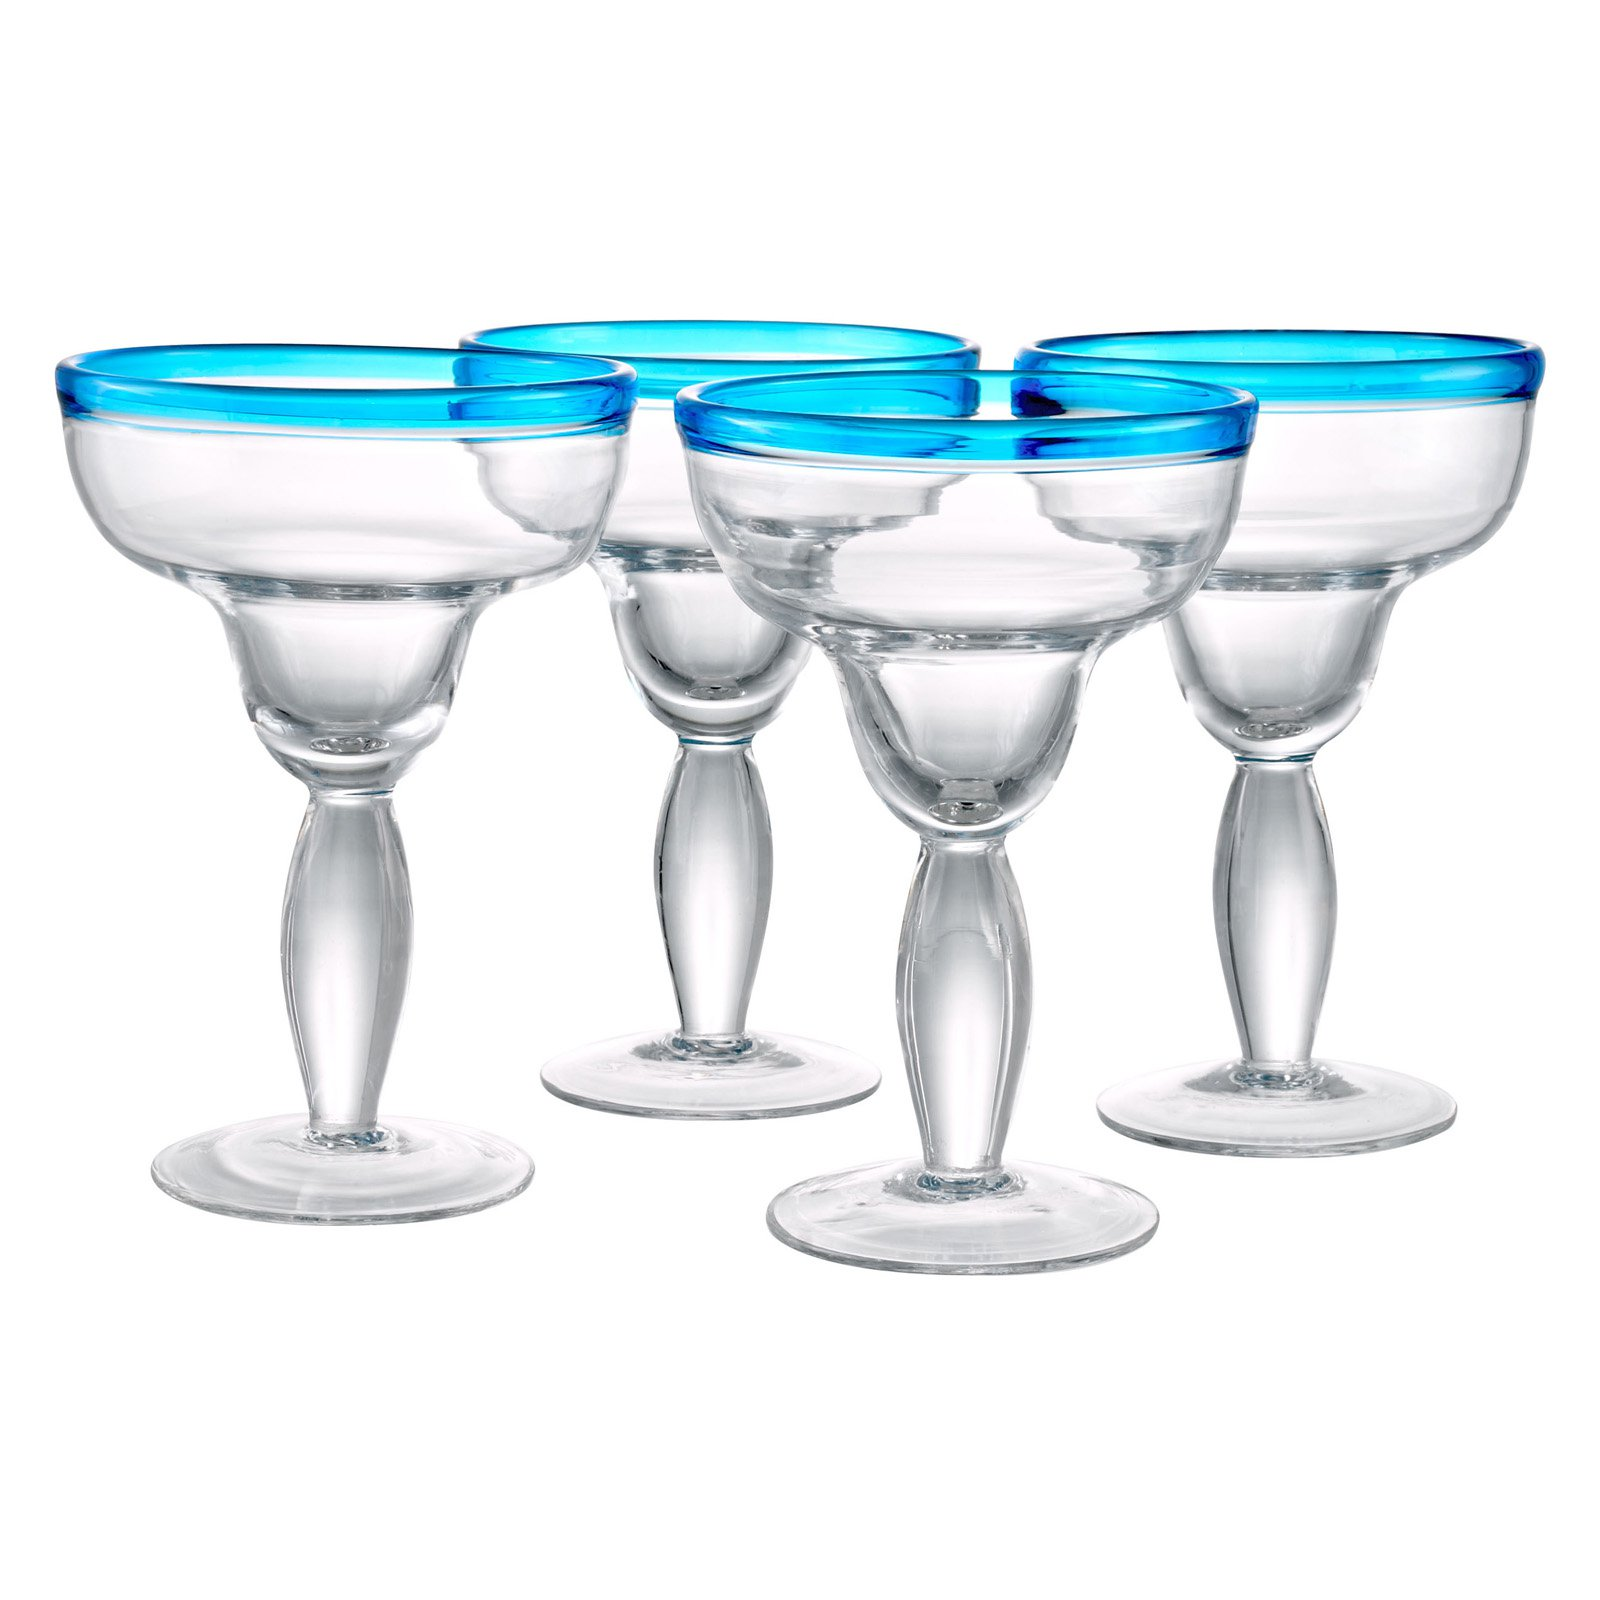 Artland Inc. Festival Peacock Margarita Glasses - Set of 4